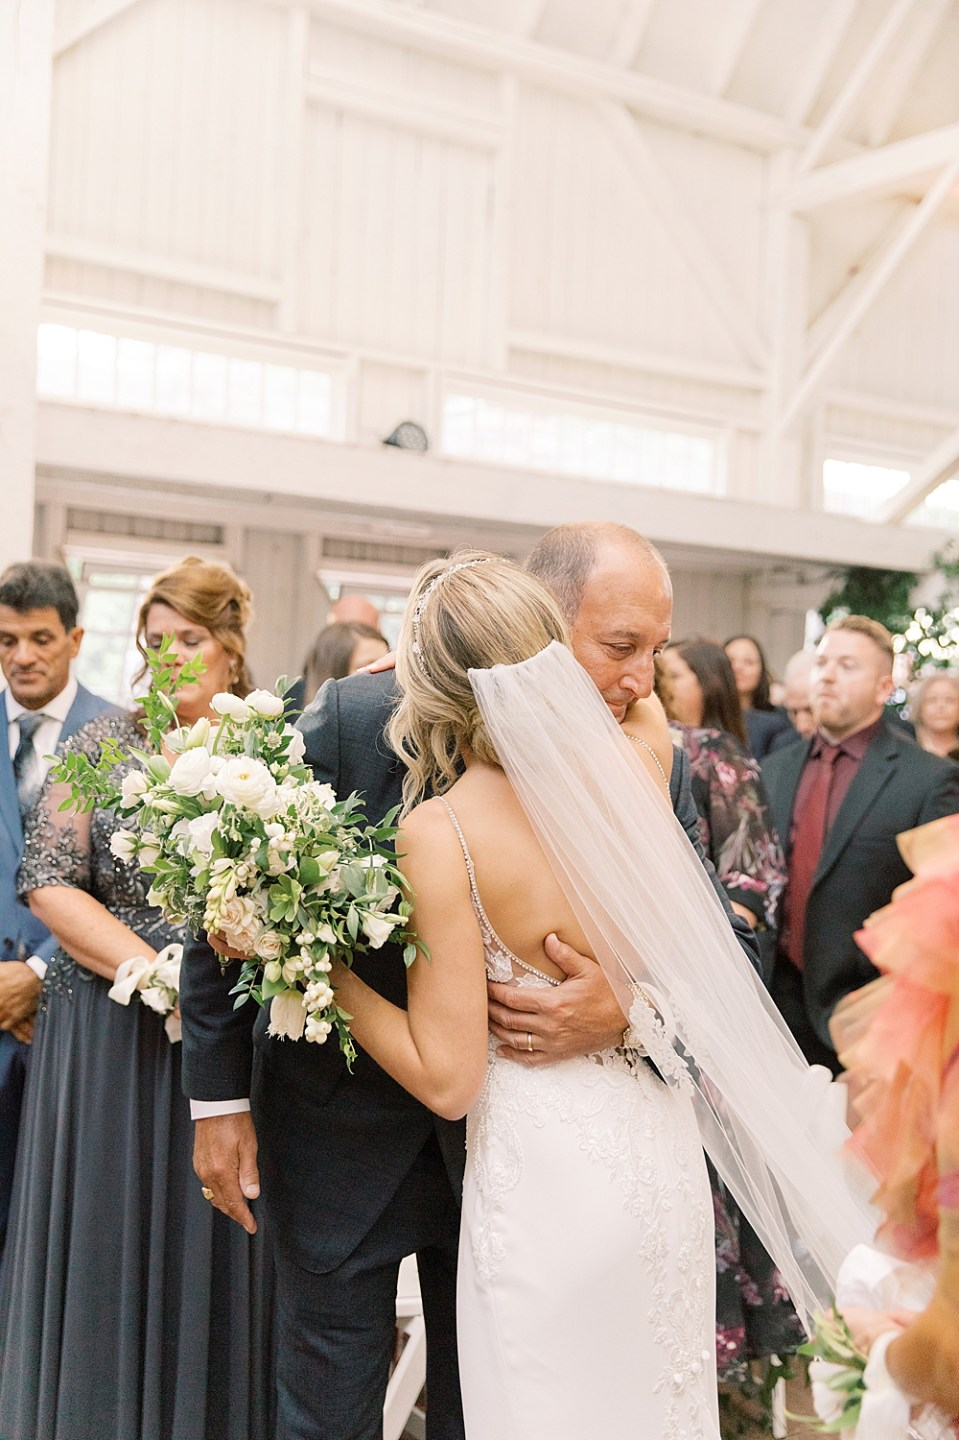 Dad giving daughter away | Ashford Estate wedding ceremony | new jersey wedding photographer sarah canning